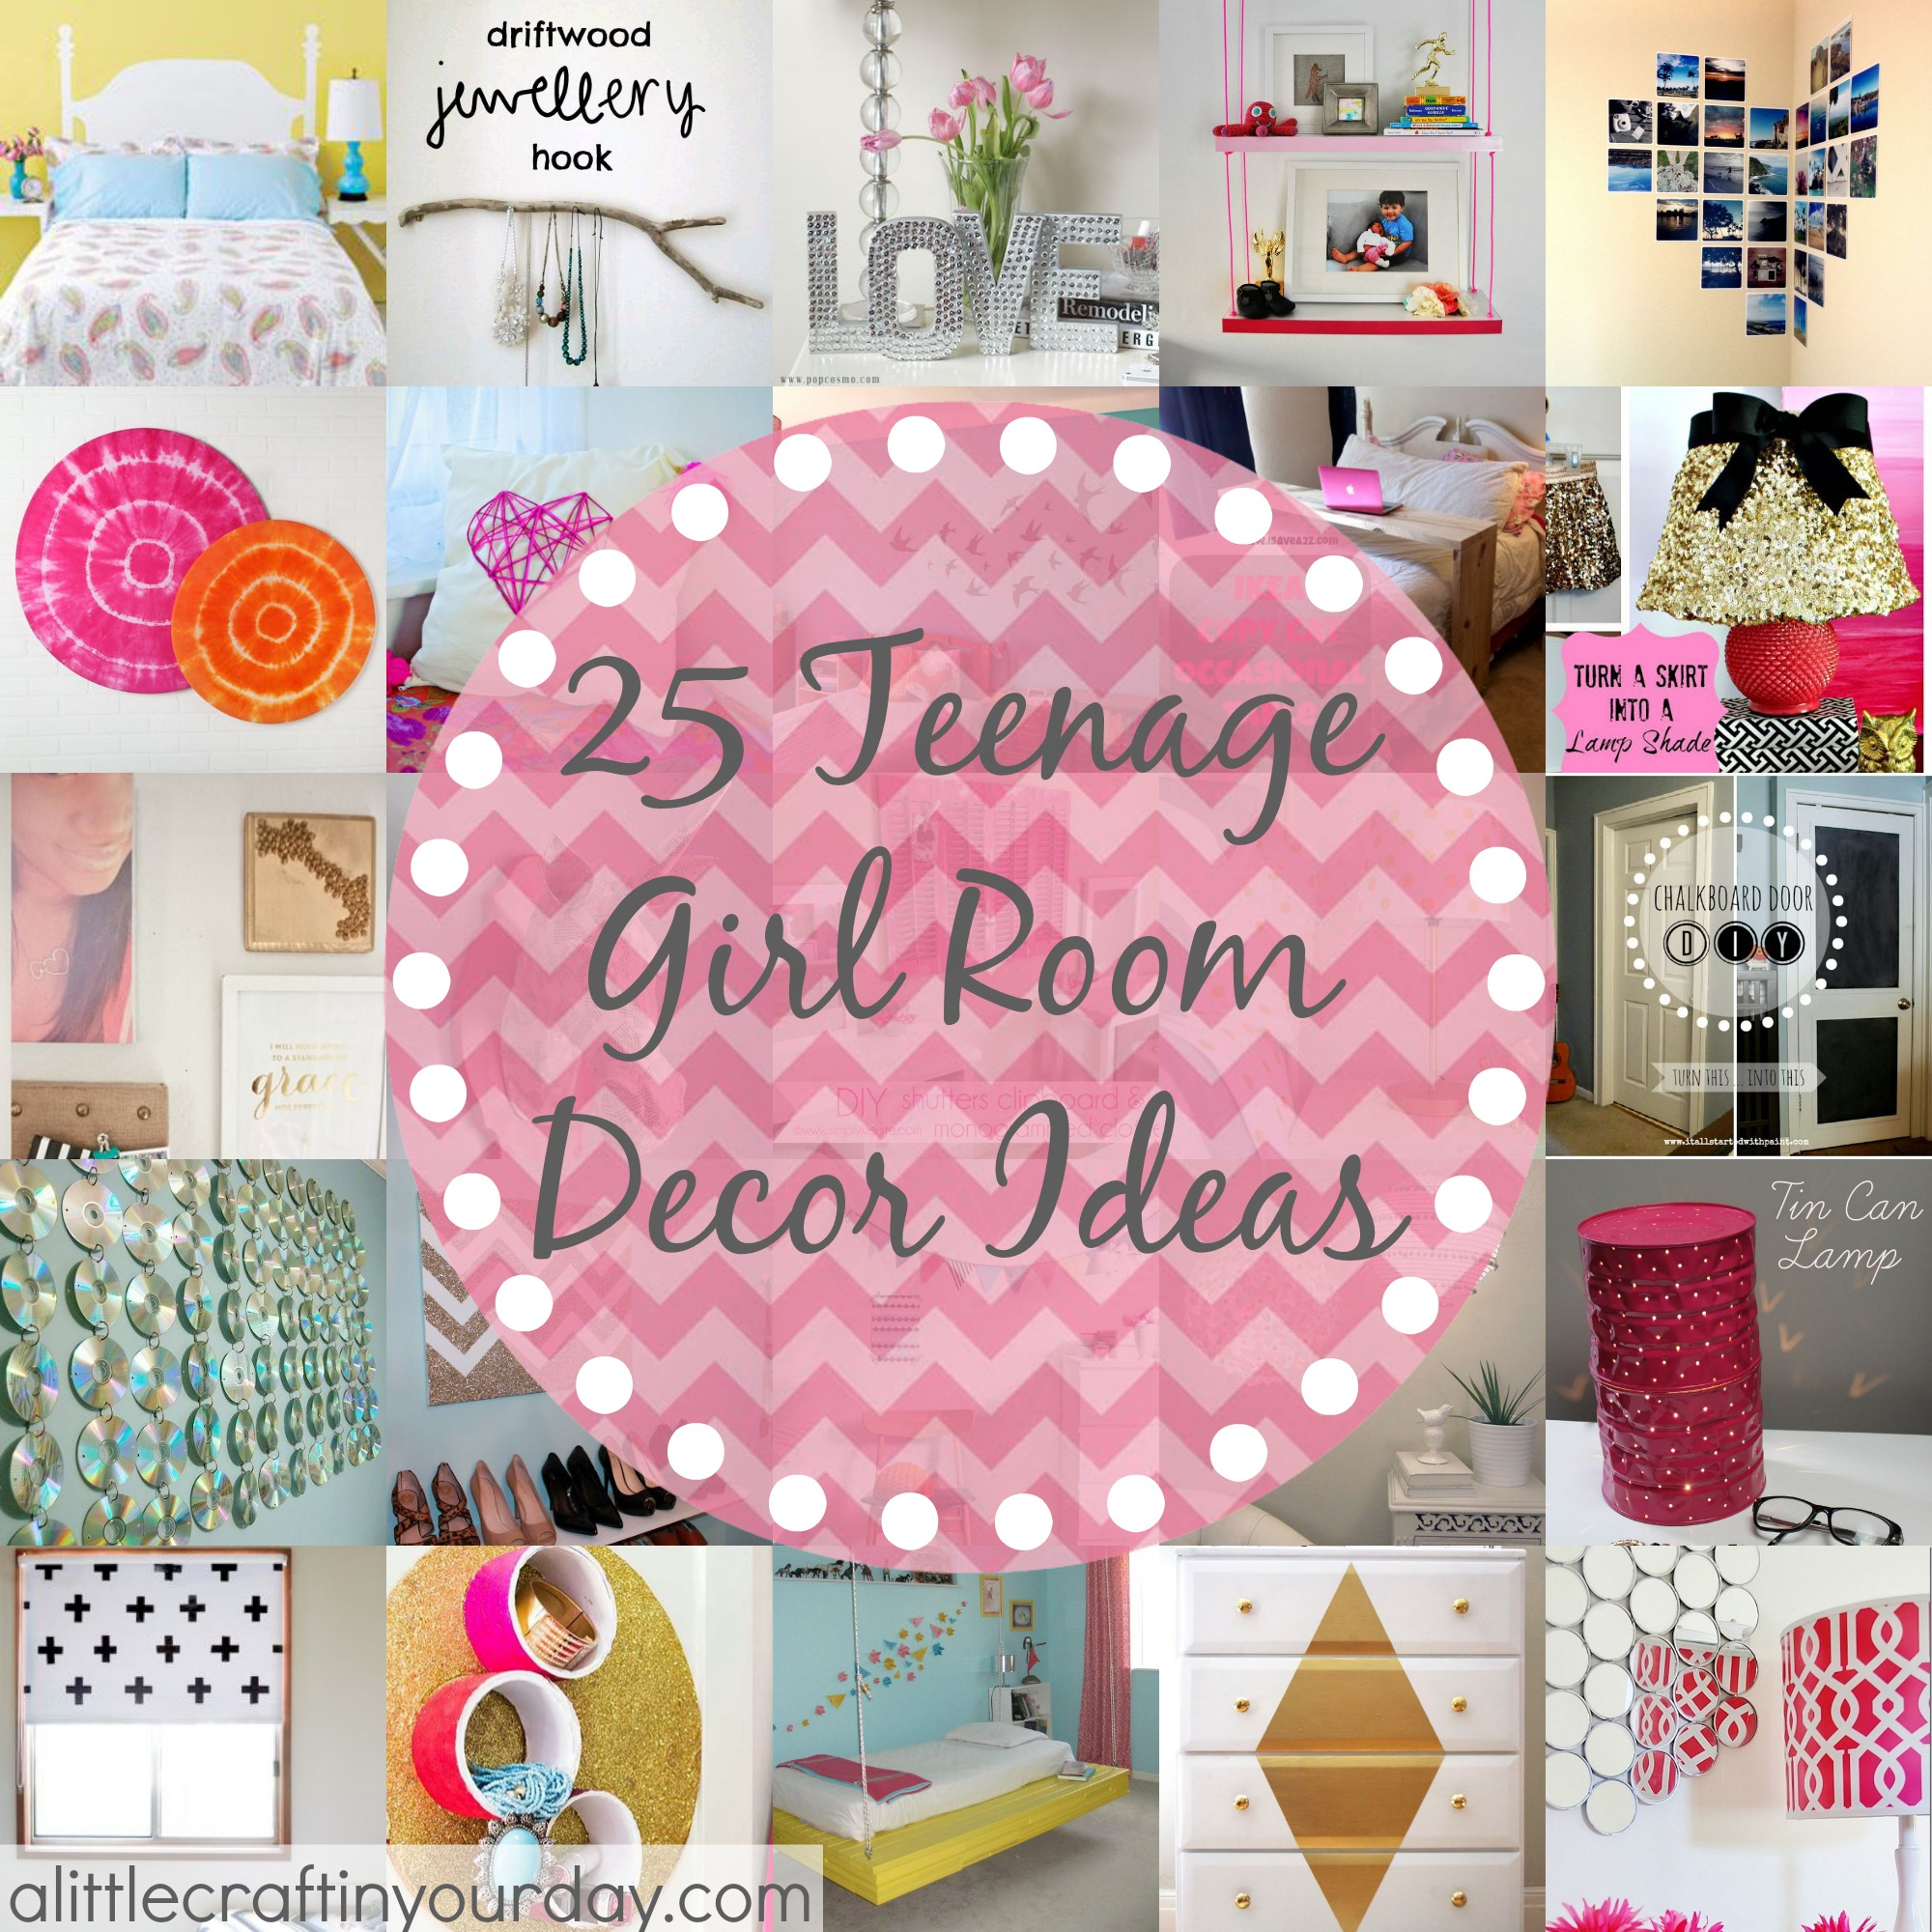 Bedroom Decor Crafts 25 more teenage girl room decor ideas - a little craft in your day